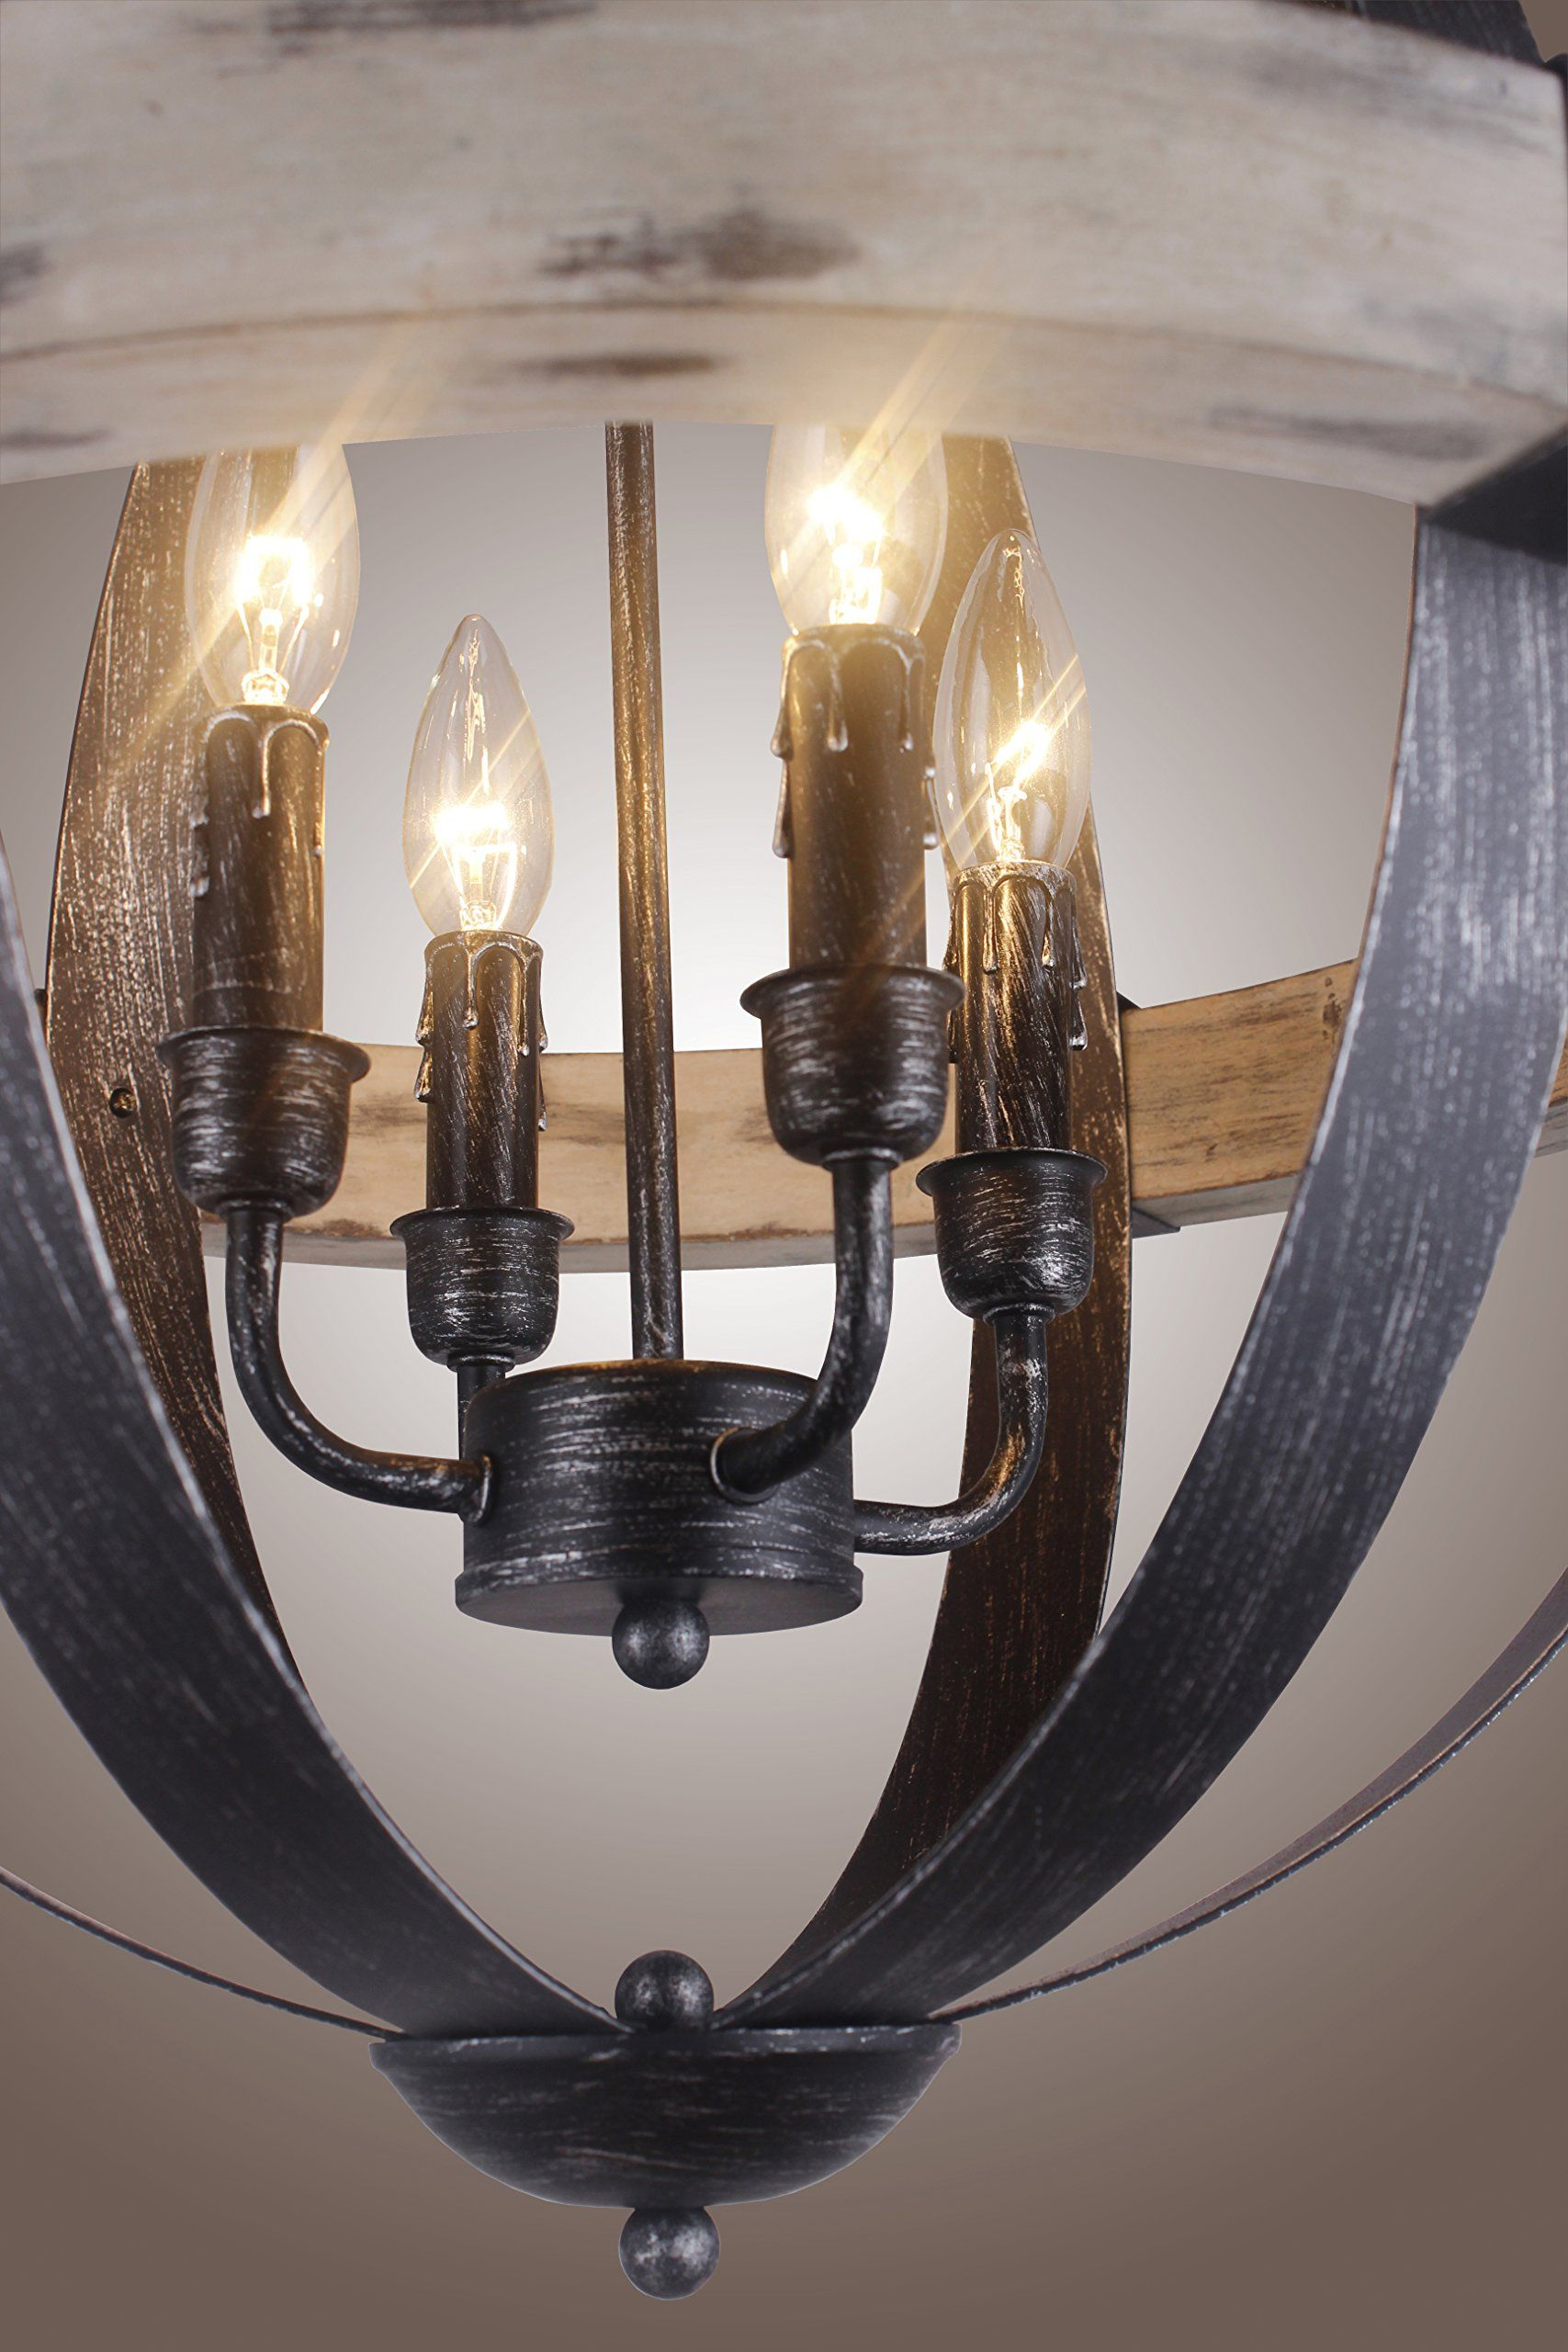 Castello Black Aspen Wrought Iron Globe Wood 4 Light Dia 20 With Regard To Crofoot 5 Light Shaded Chandeliers (View 3 of 30)